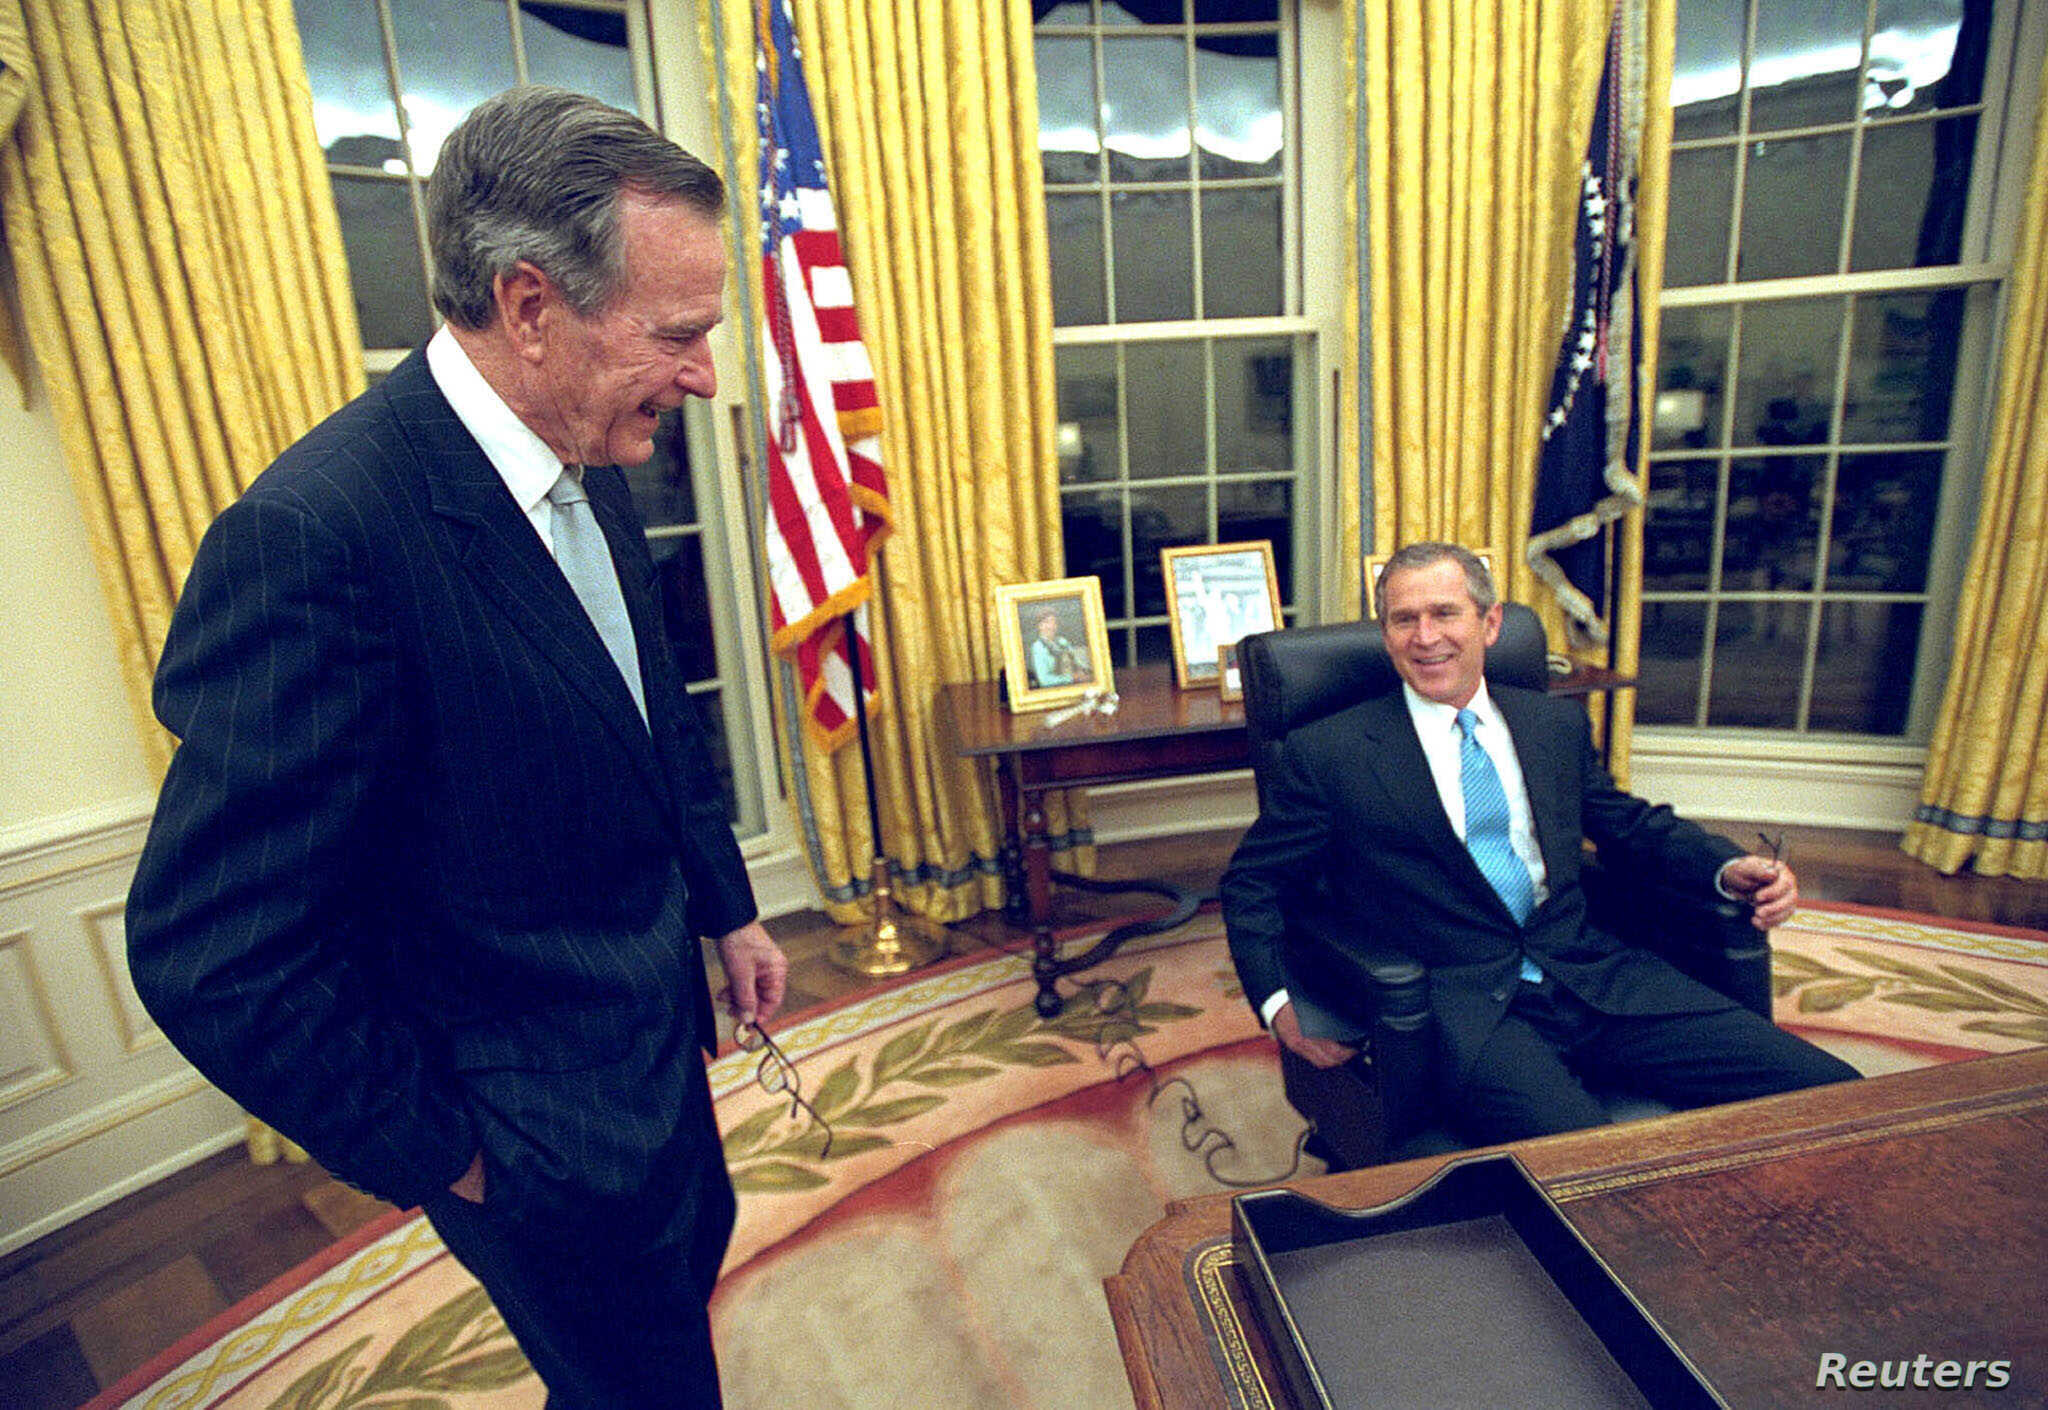 U.S. President George W. Bush sits at his desk in the Oval Office for the first time on Inaugural Day, in this January 20, 2001 file photo, as his father, former President George H.W. Bush looks on.